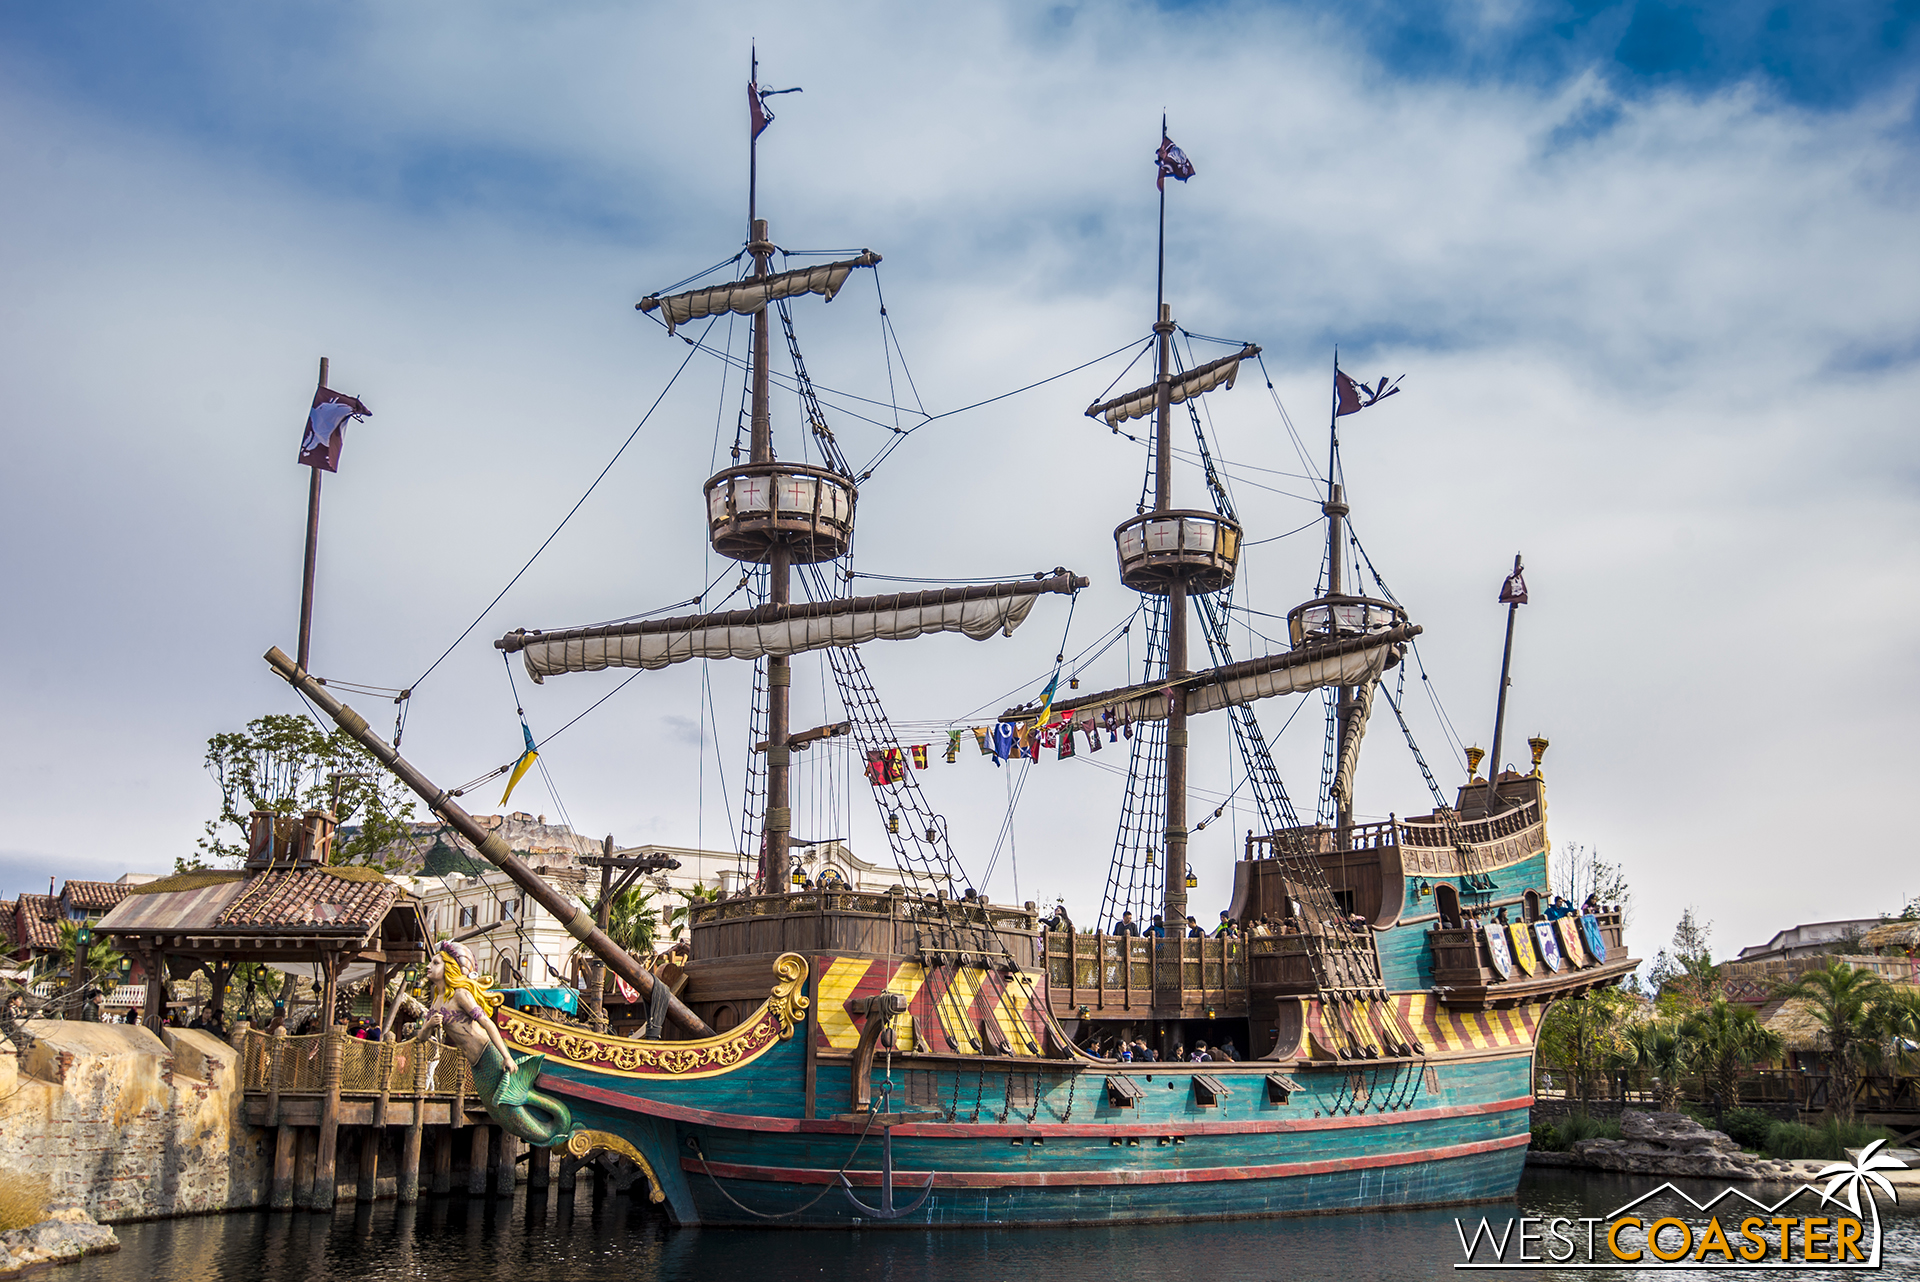 Another galleon docked at Treasure Cove.